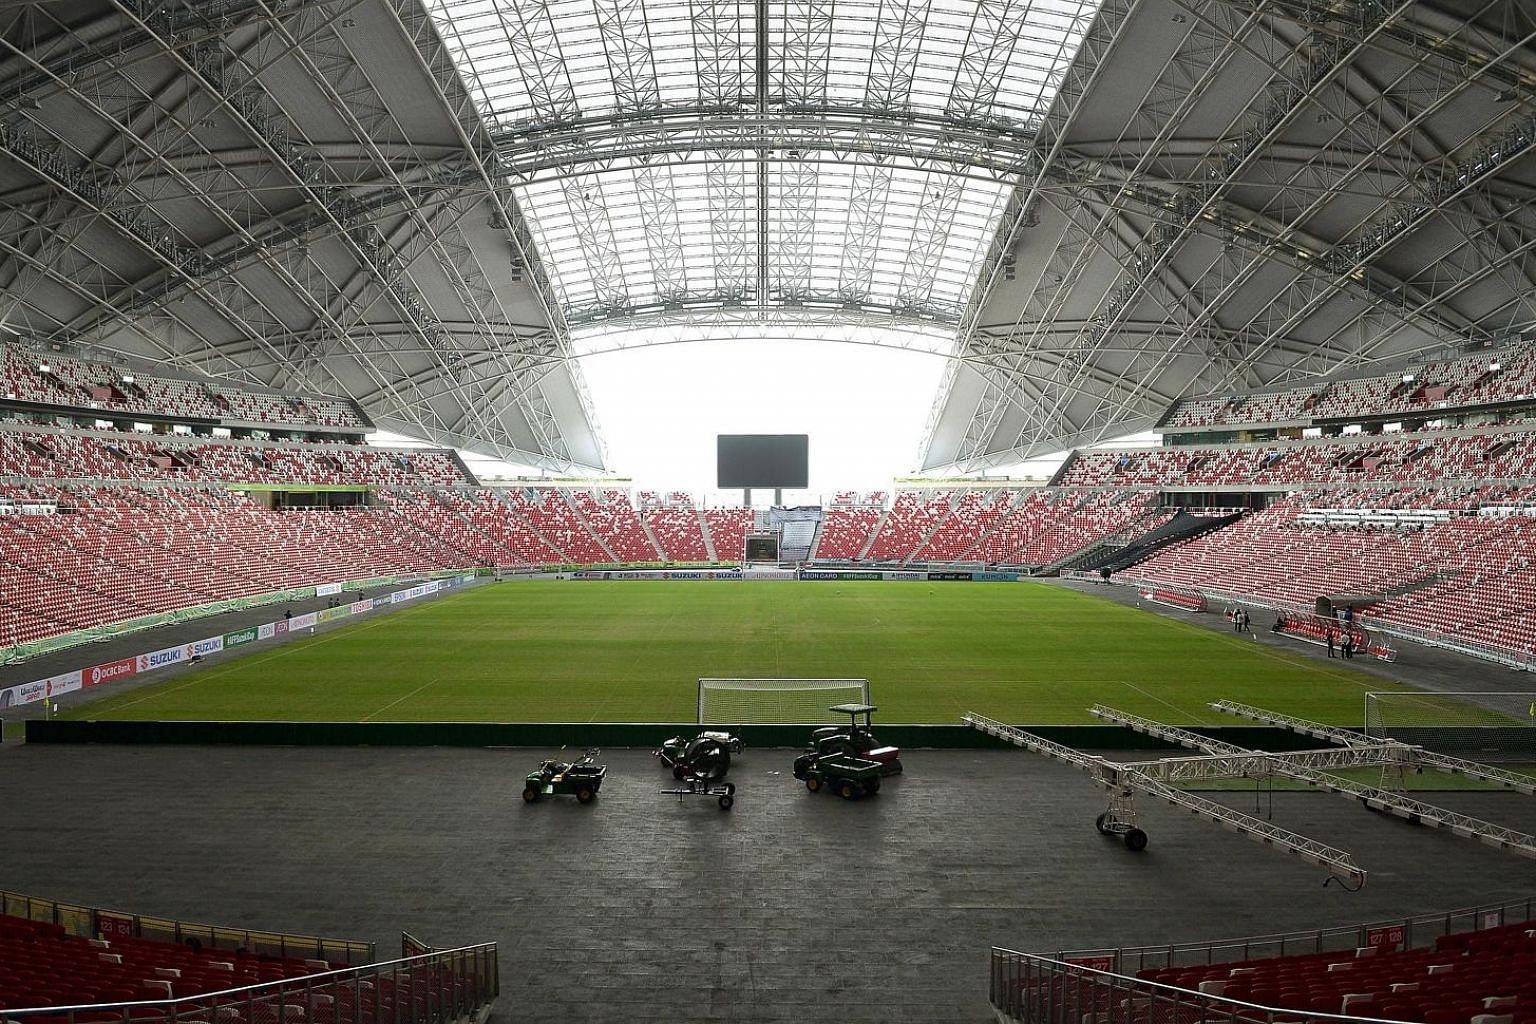 Coaches and officials say players will benefit from a short training session on the National Stadium field to get used to its texture and dimensions, as well as the atmosphere.